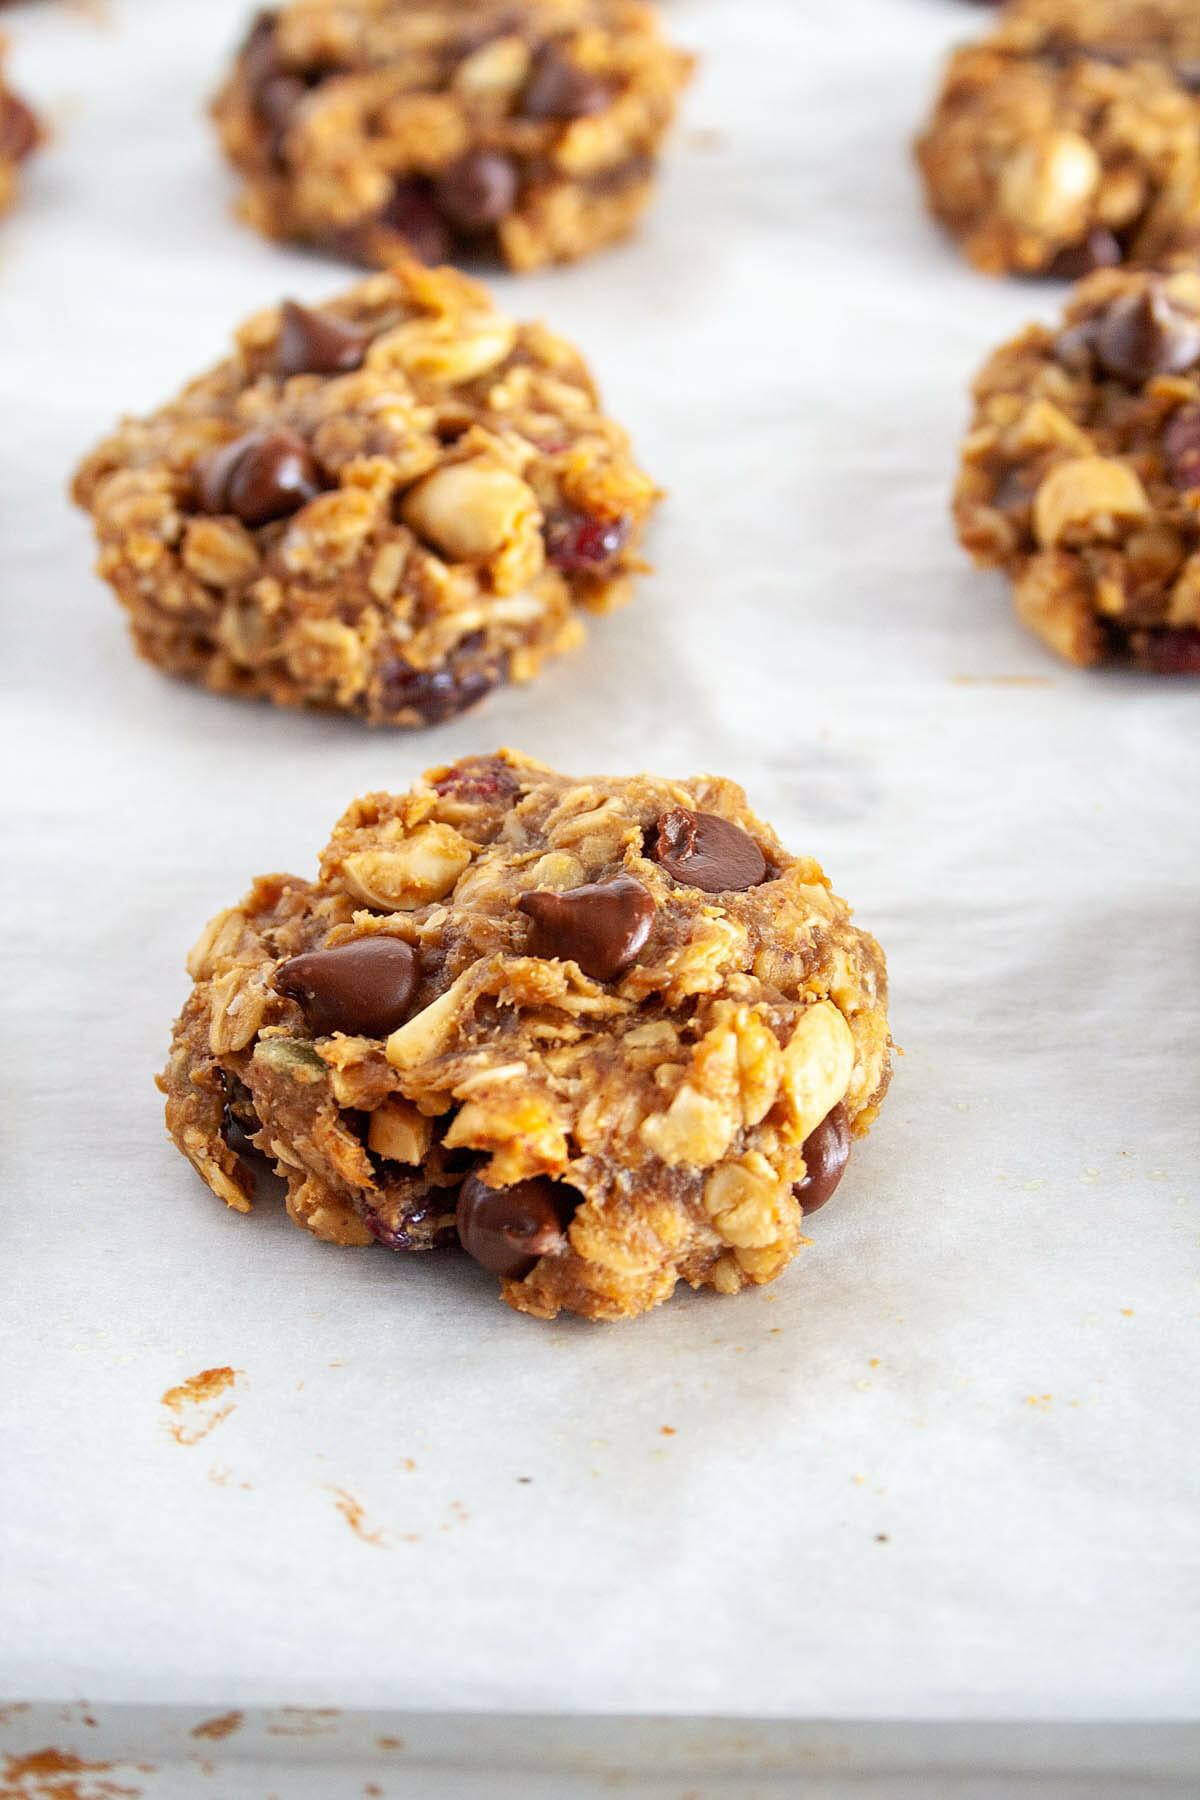 Trail Mix Cookies on a parchment lined baking sheet.